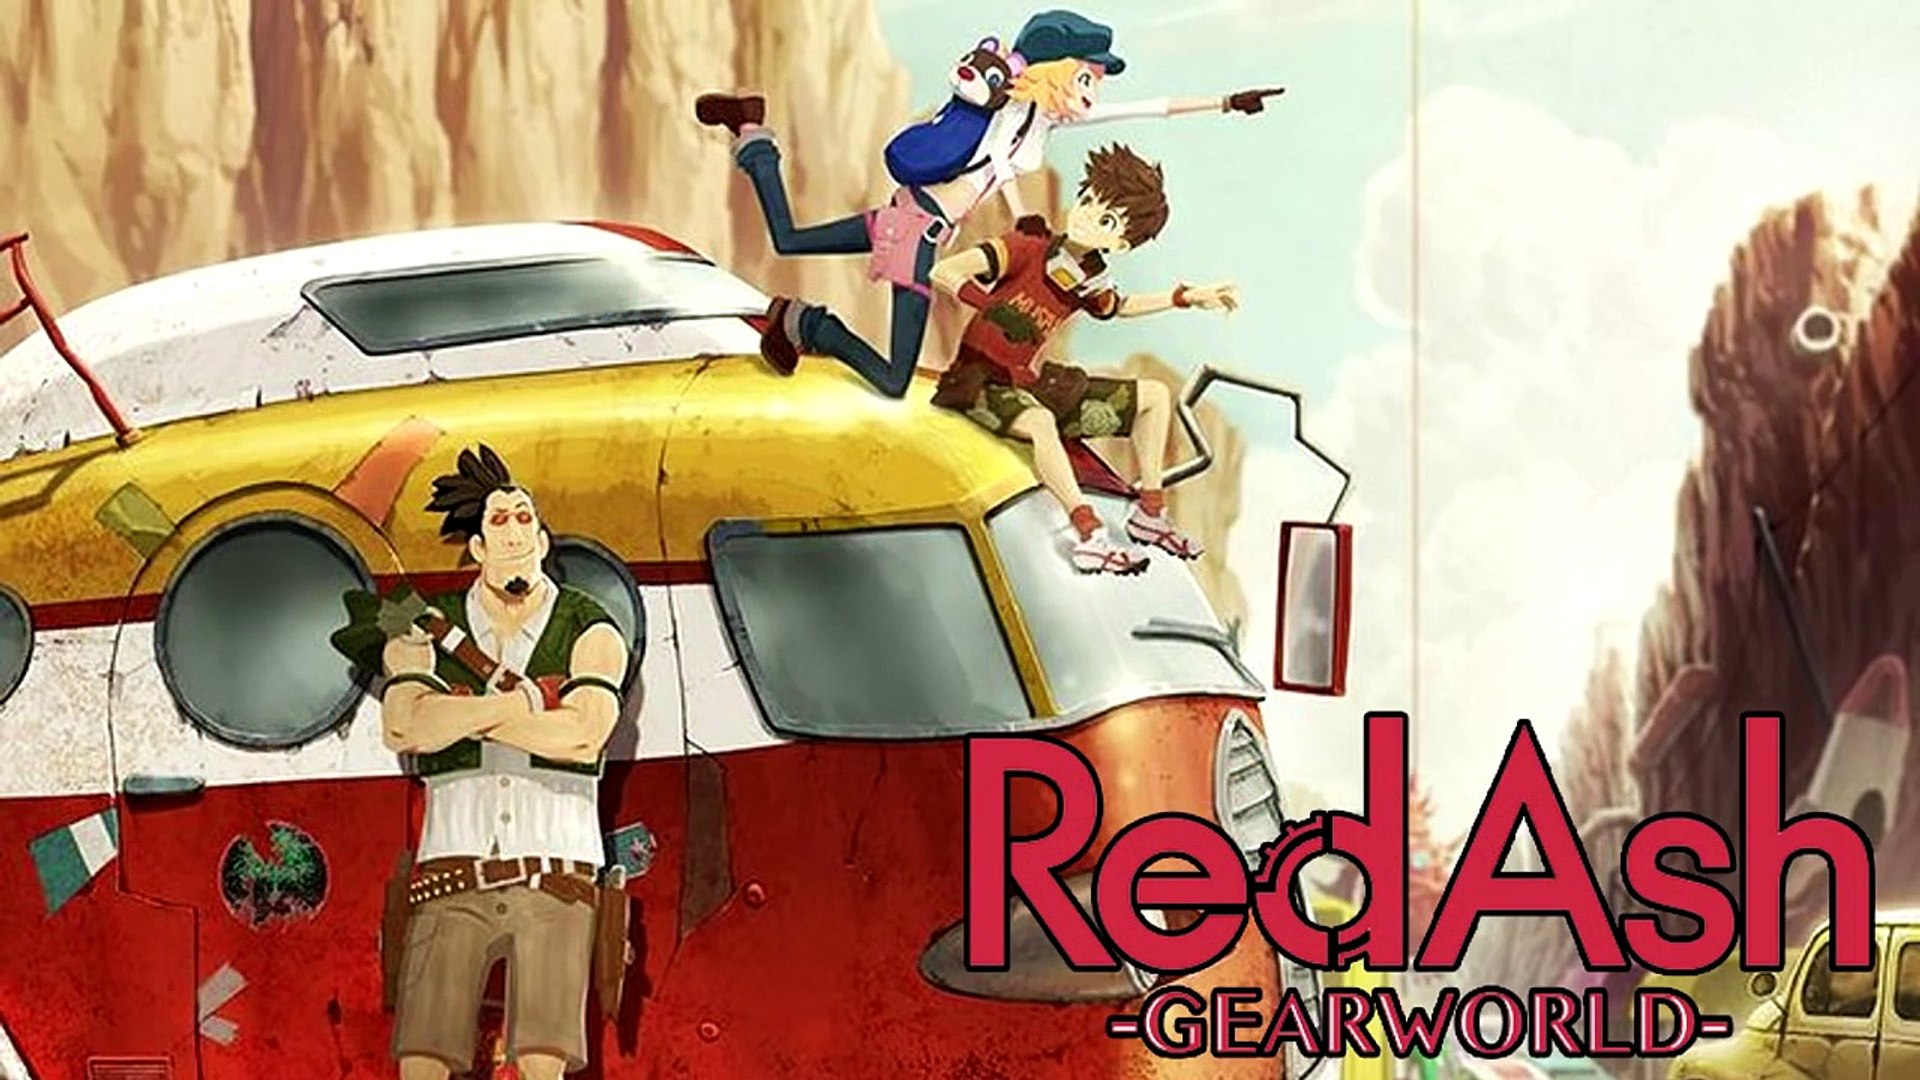 Red Ash Gearworld Anime Footage Revealed